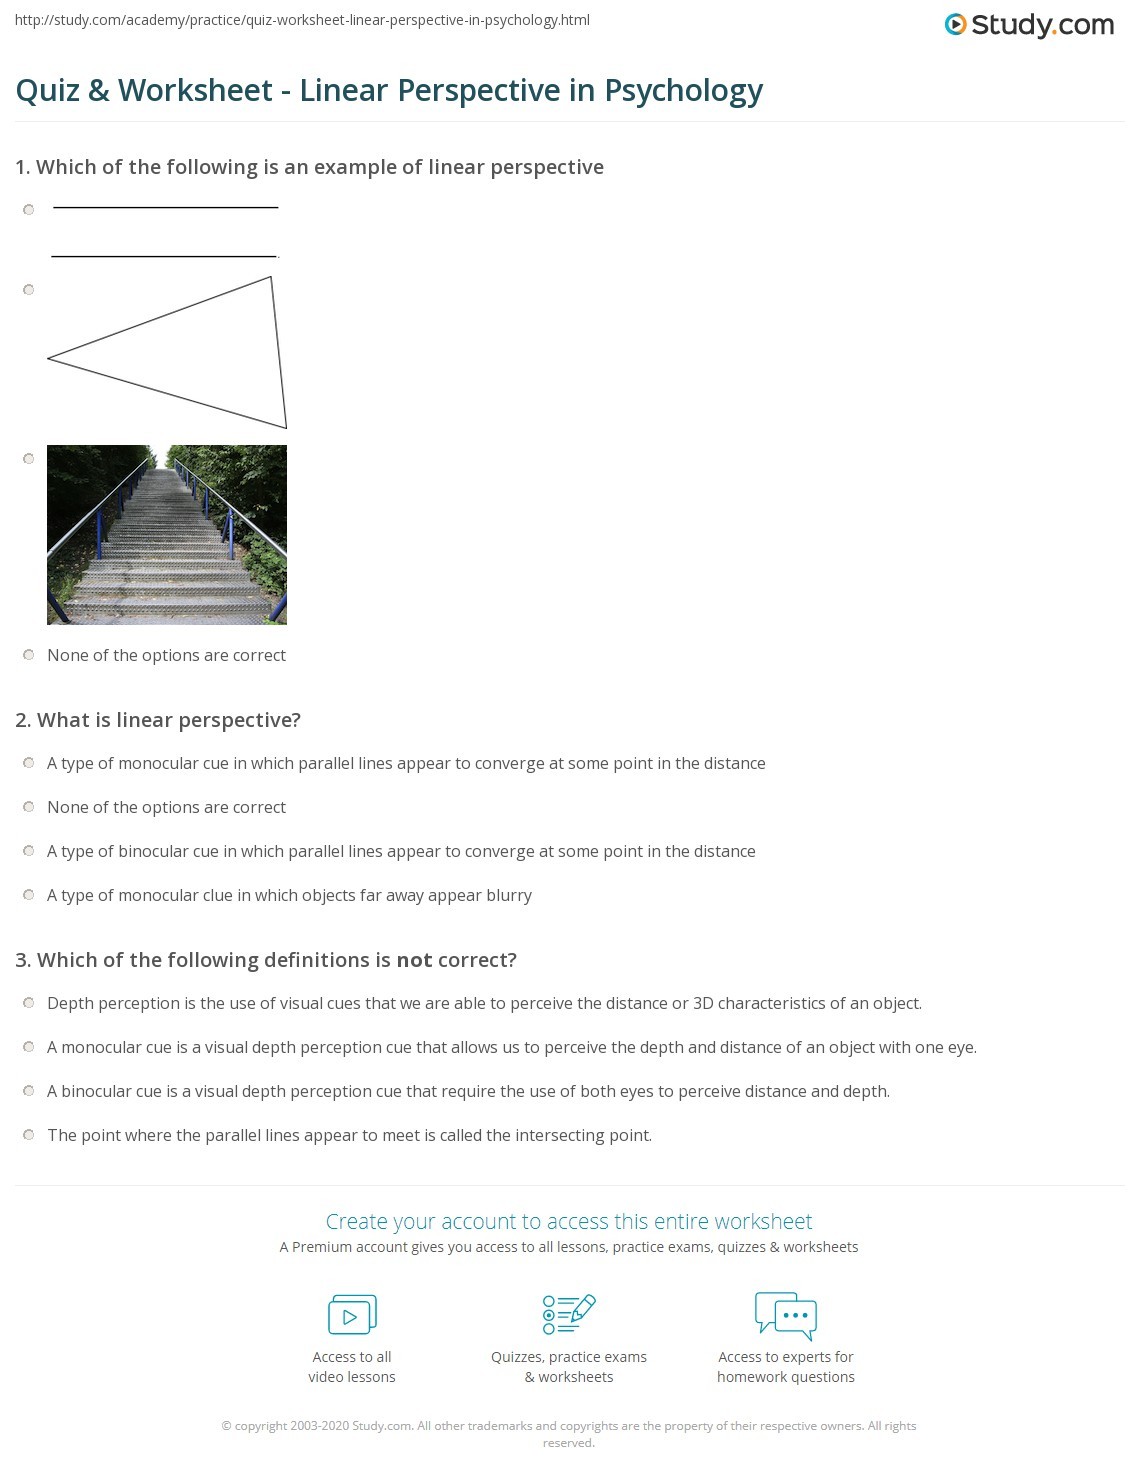 Quiz Worksheet Linear Perspective In Psychology Study